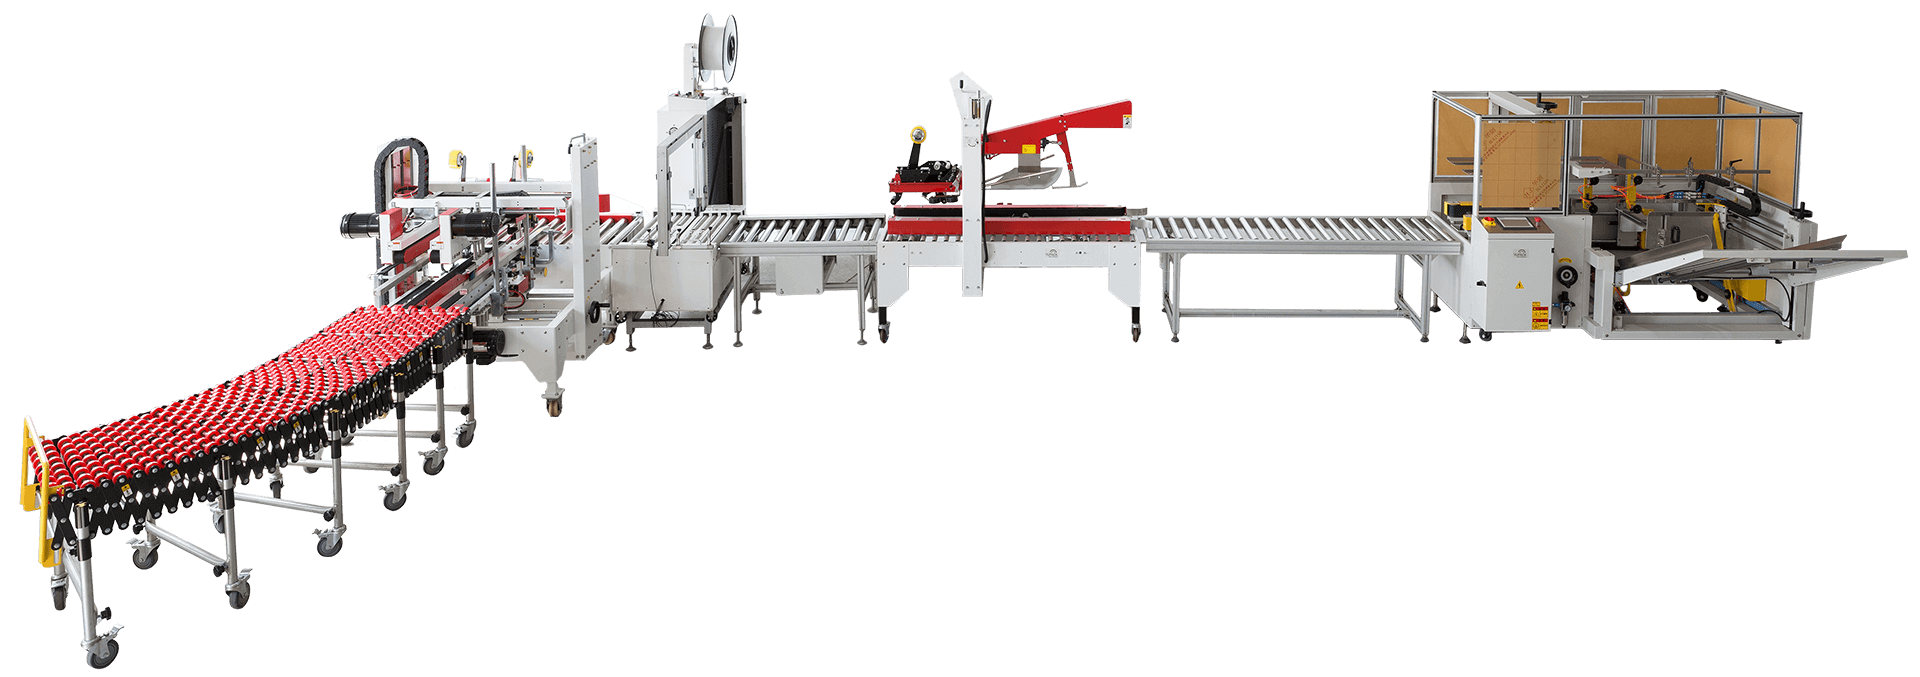 Carton-erector-H-type-carton-sealer-and-automatic-strapping-packing-line.png